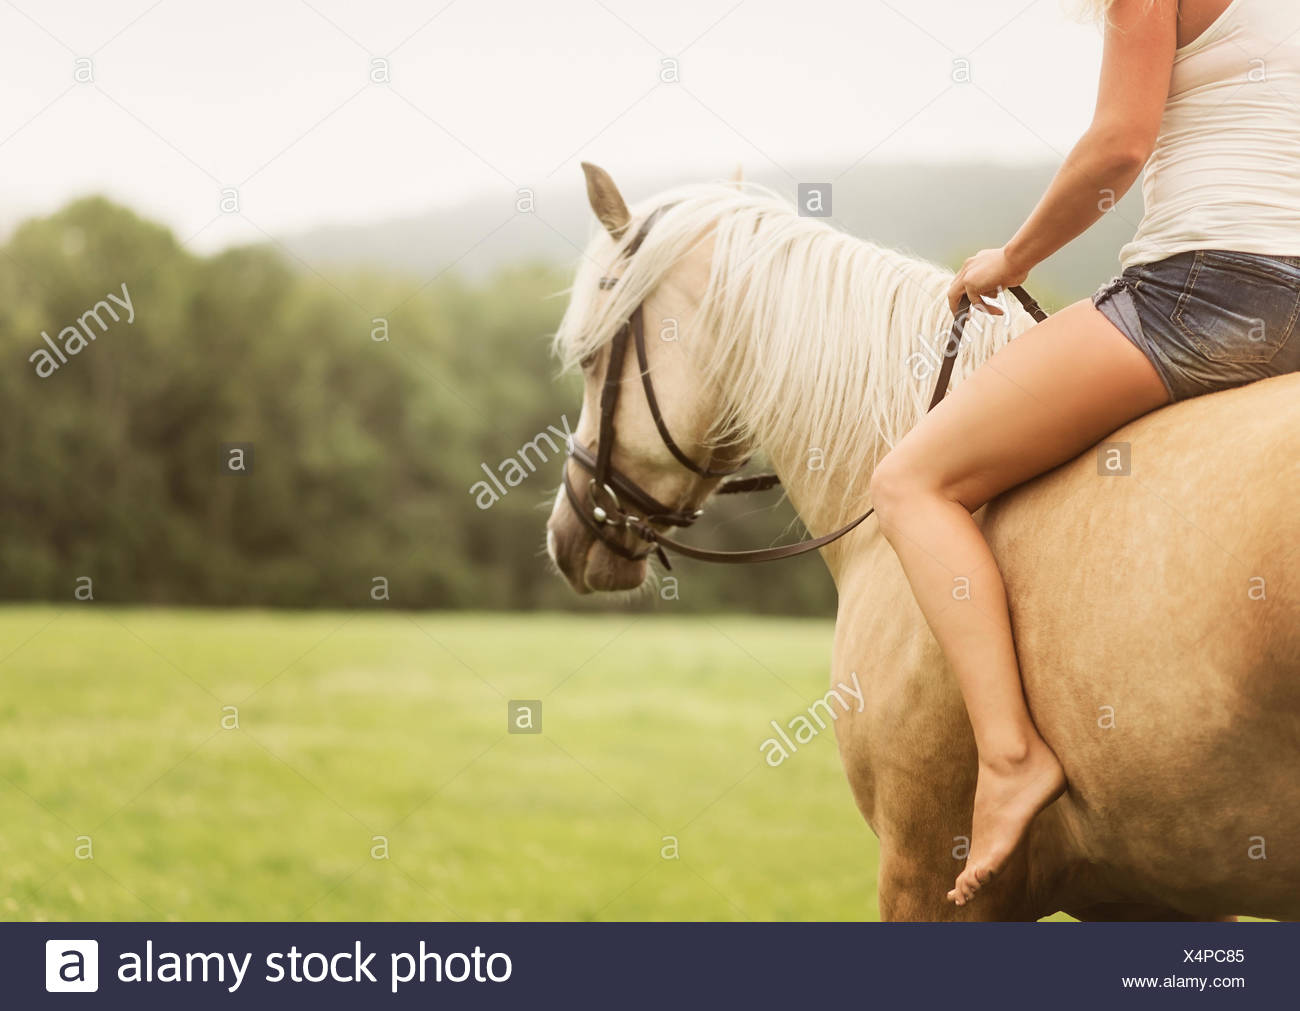 Woman horseback riding in countryside - Stock Image